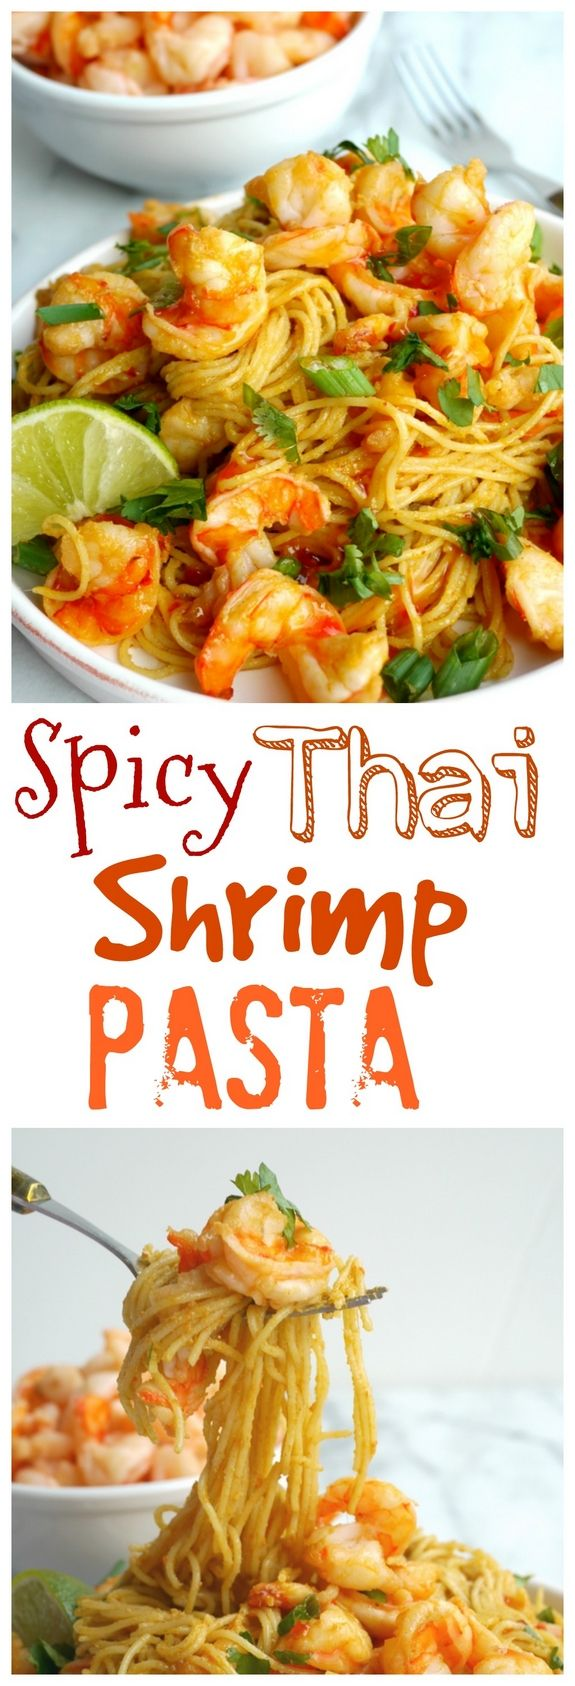 Video recipe spicy thai shrimp pasta from noblepig thai video recipe spicy thai shrimp pasta from noblepig forumfinder Image collections